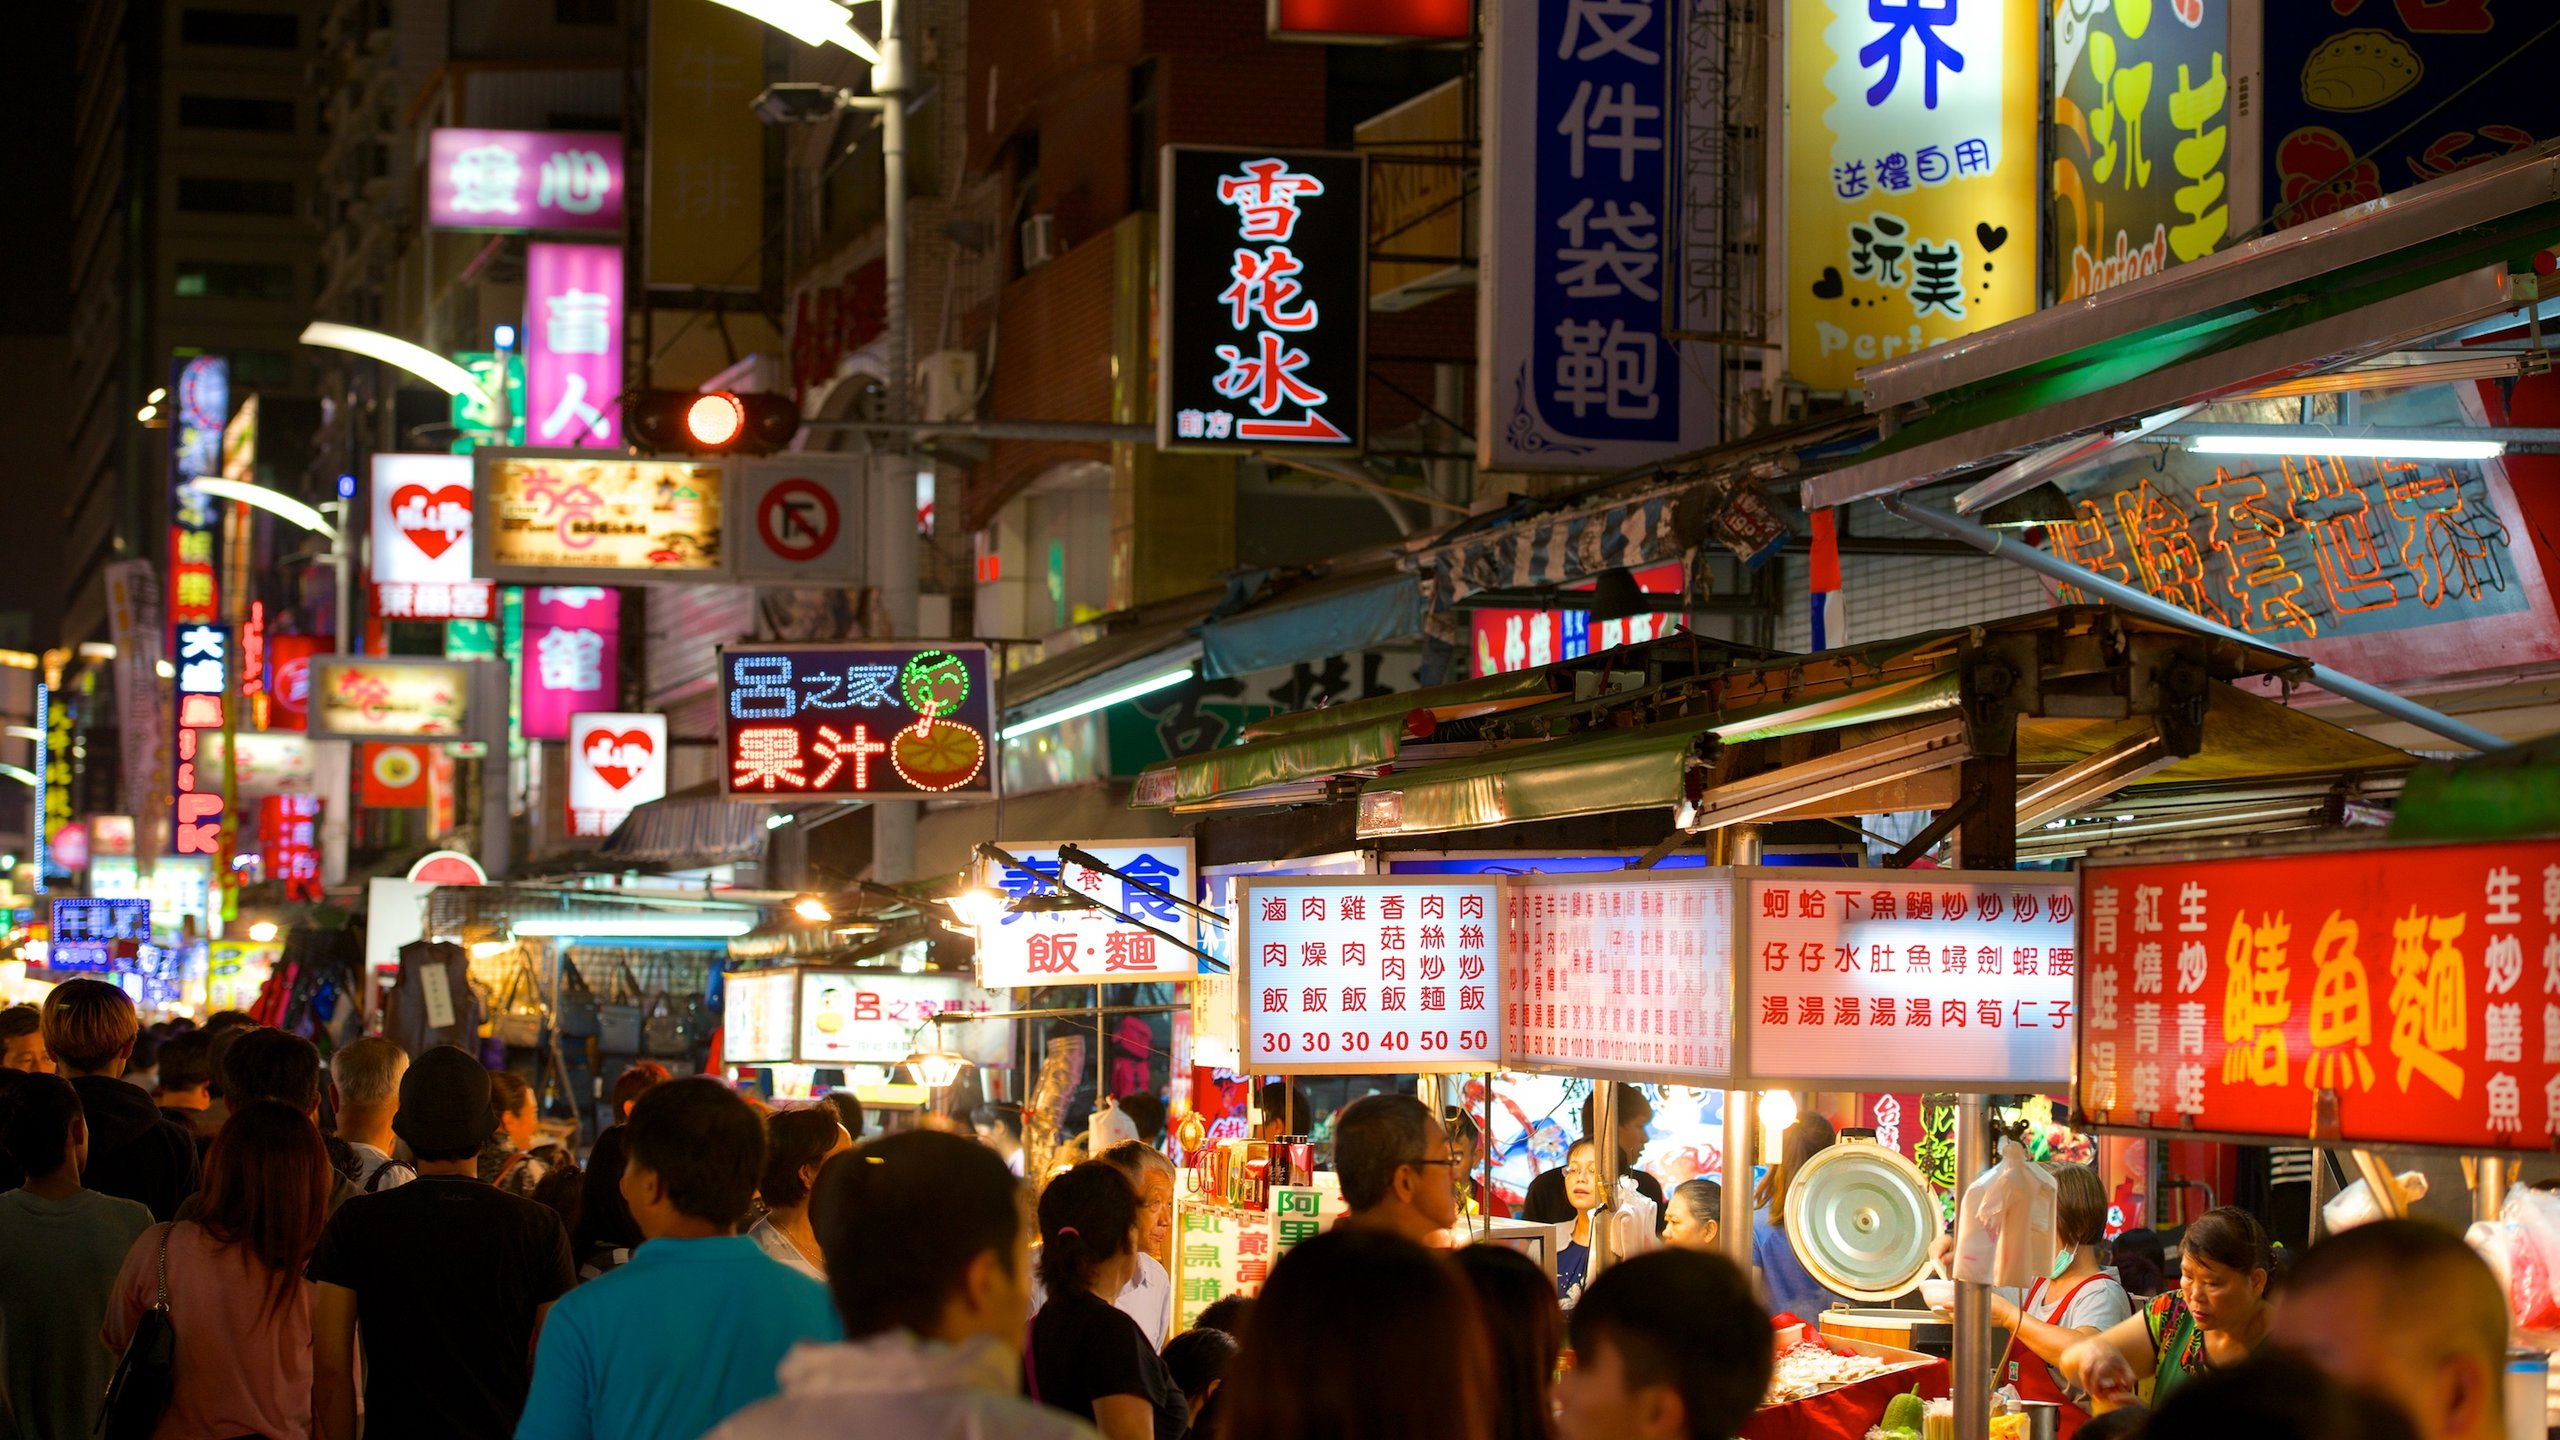 Get a sense of the tastes, sounds and smells of Taiwan in this buzzing night market full of stalls selling local delicacies.